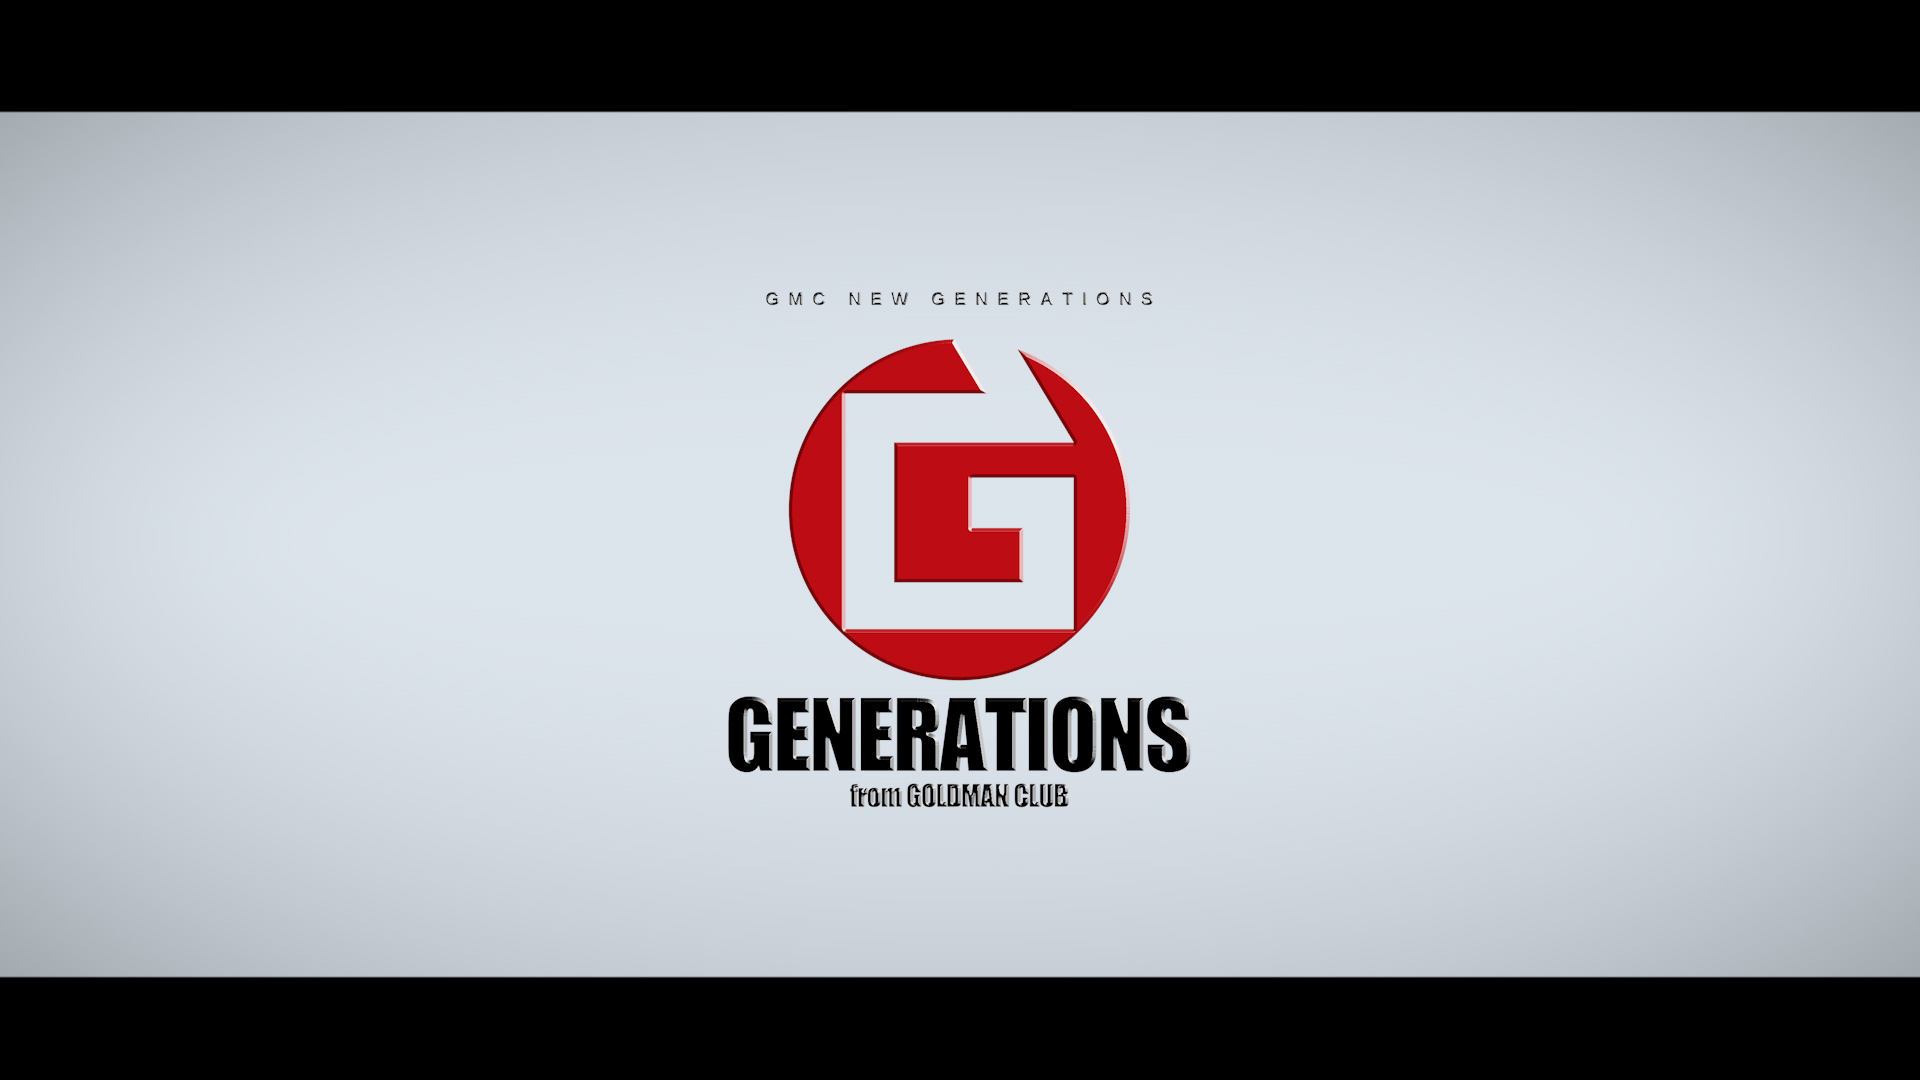 【特集】GMC NEW GENERATIONS